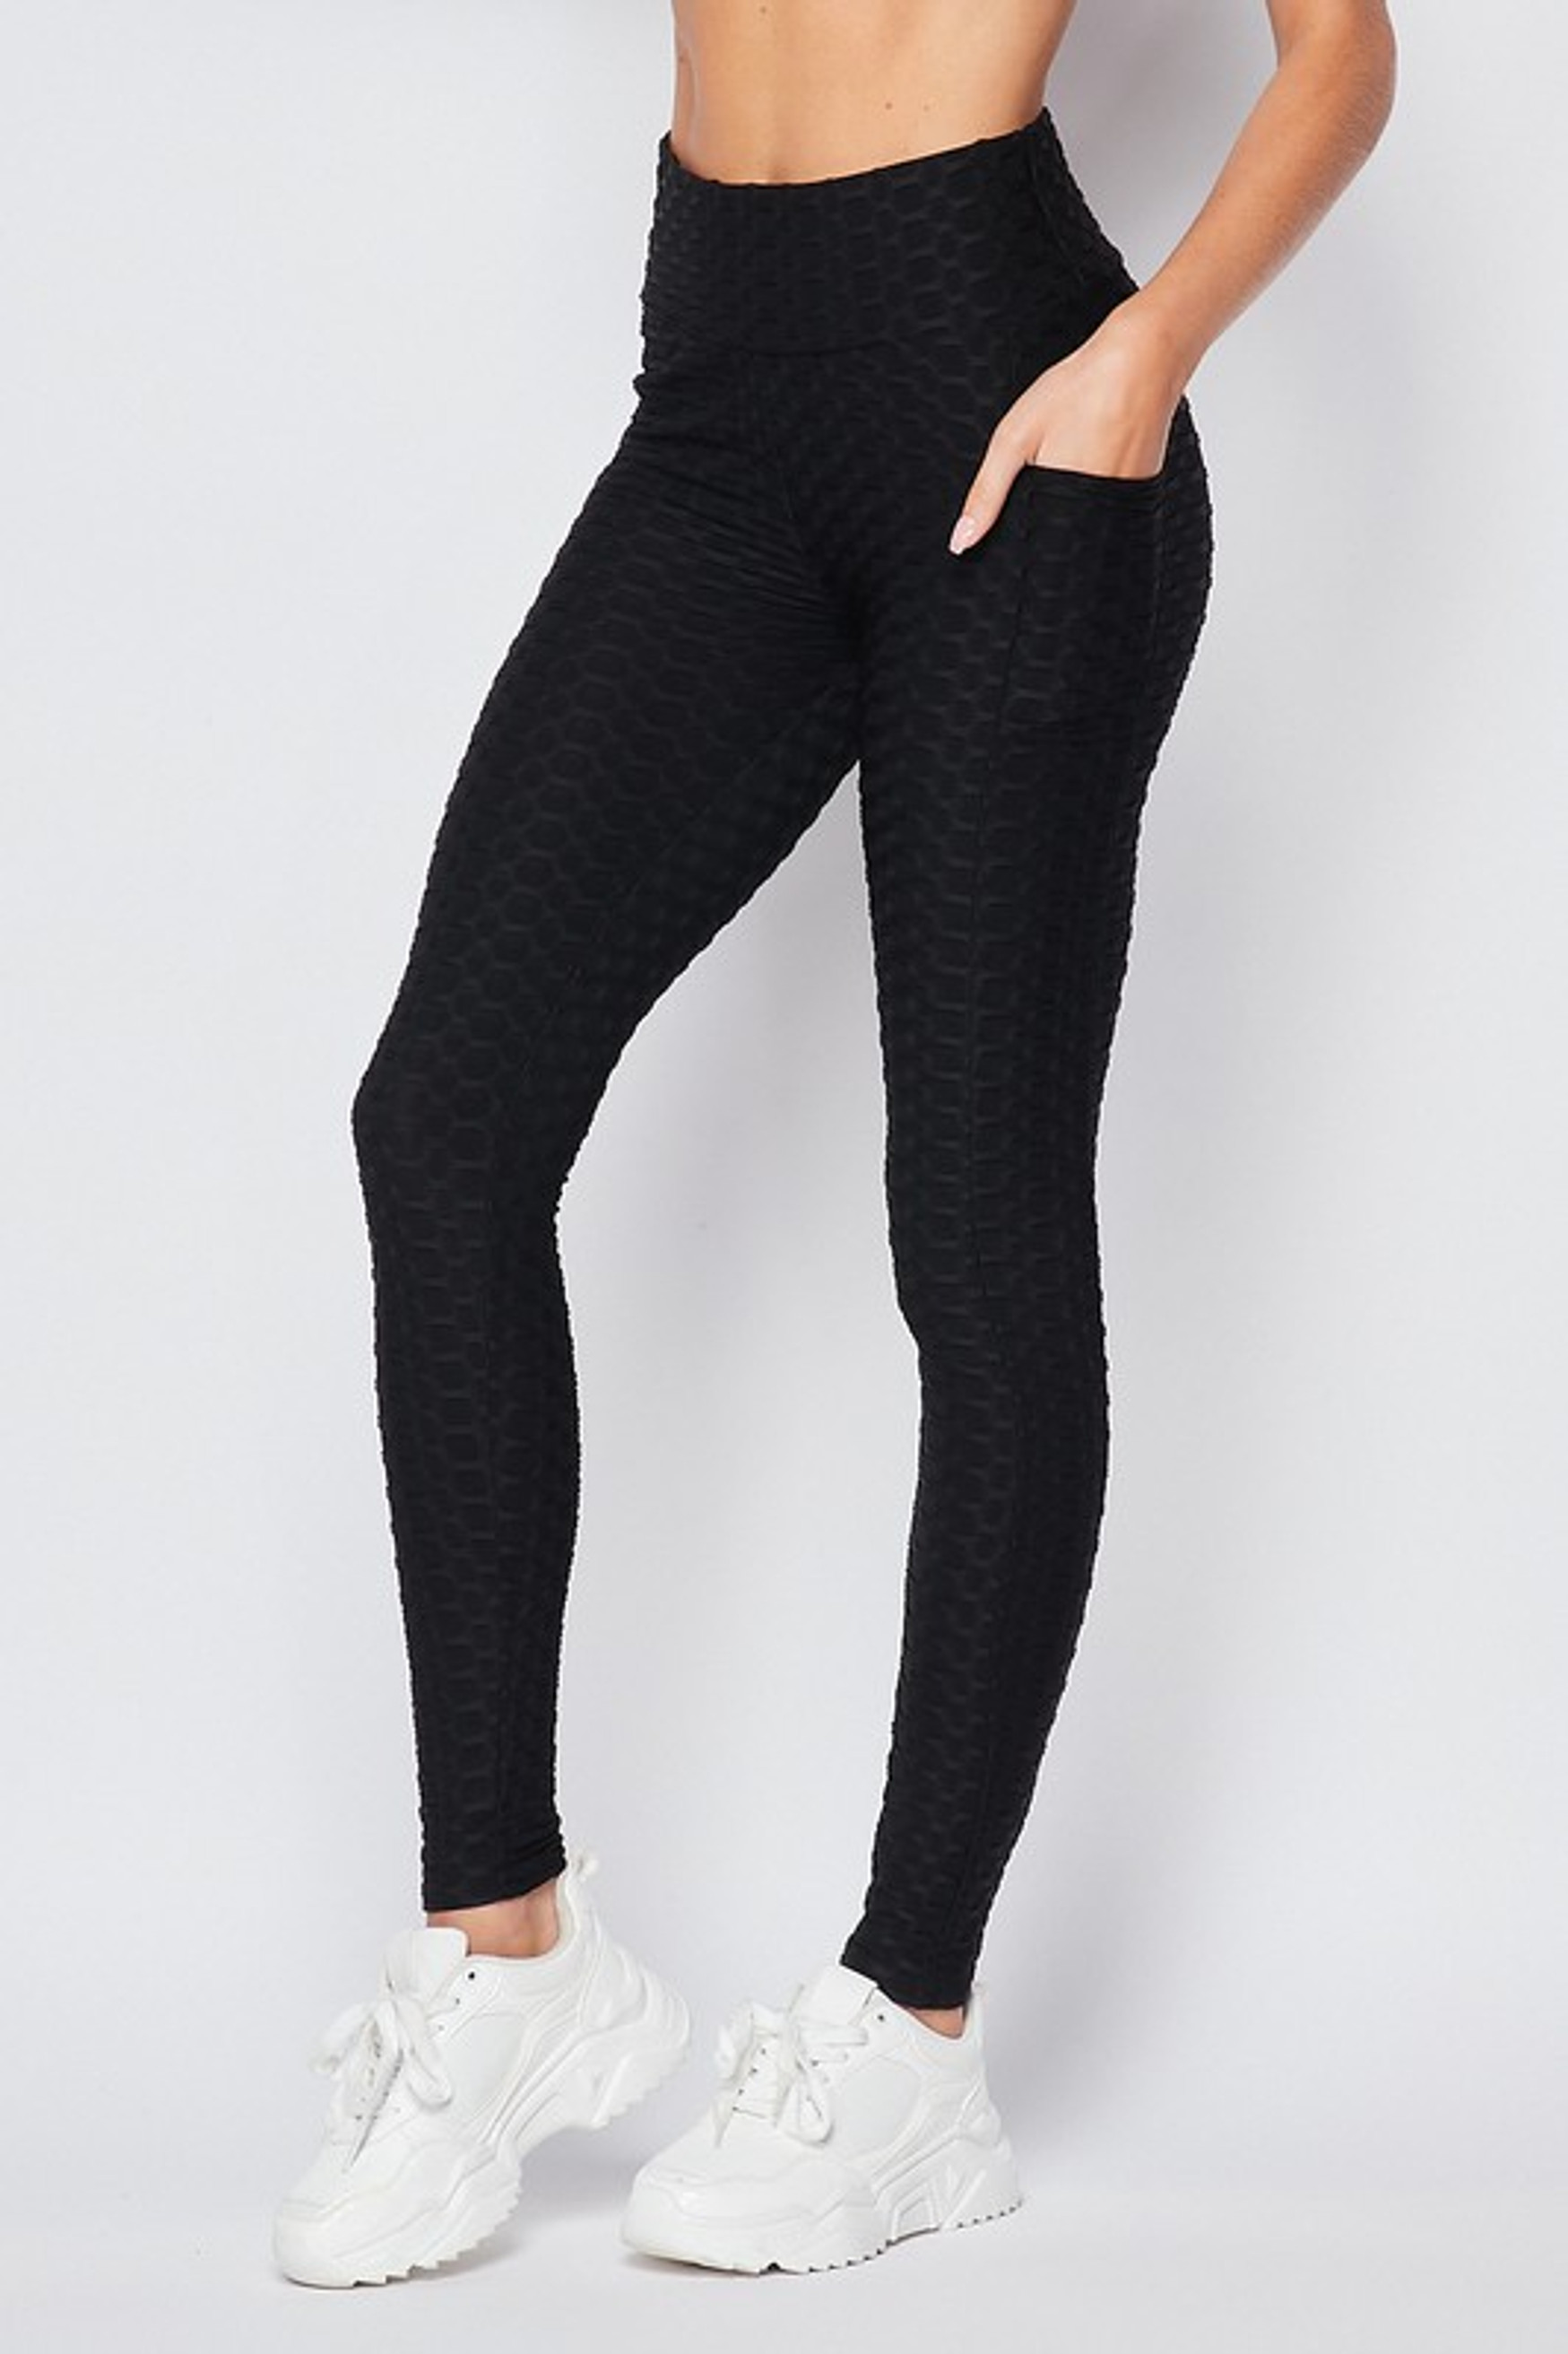 Left side of Black Scrunch Butt Popcorn Textured High Waisted Leggings with Pockets - Zinati (W&J)